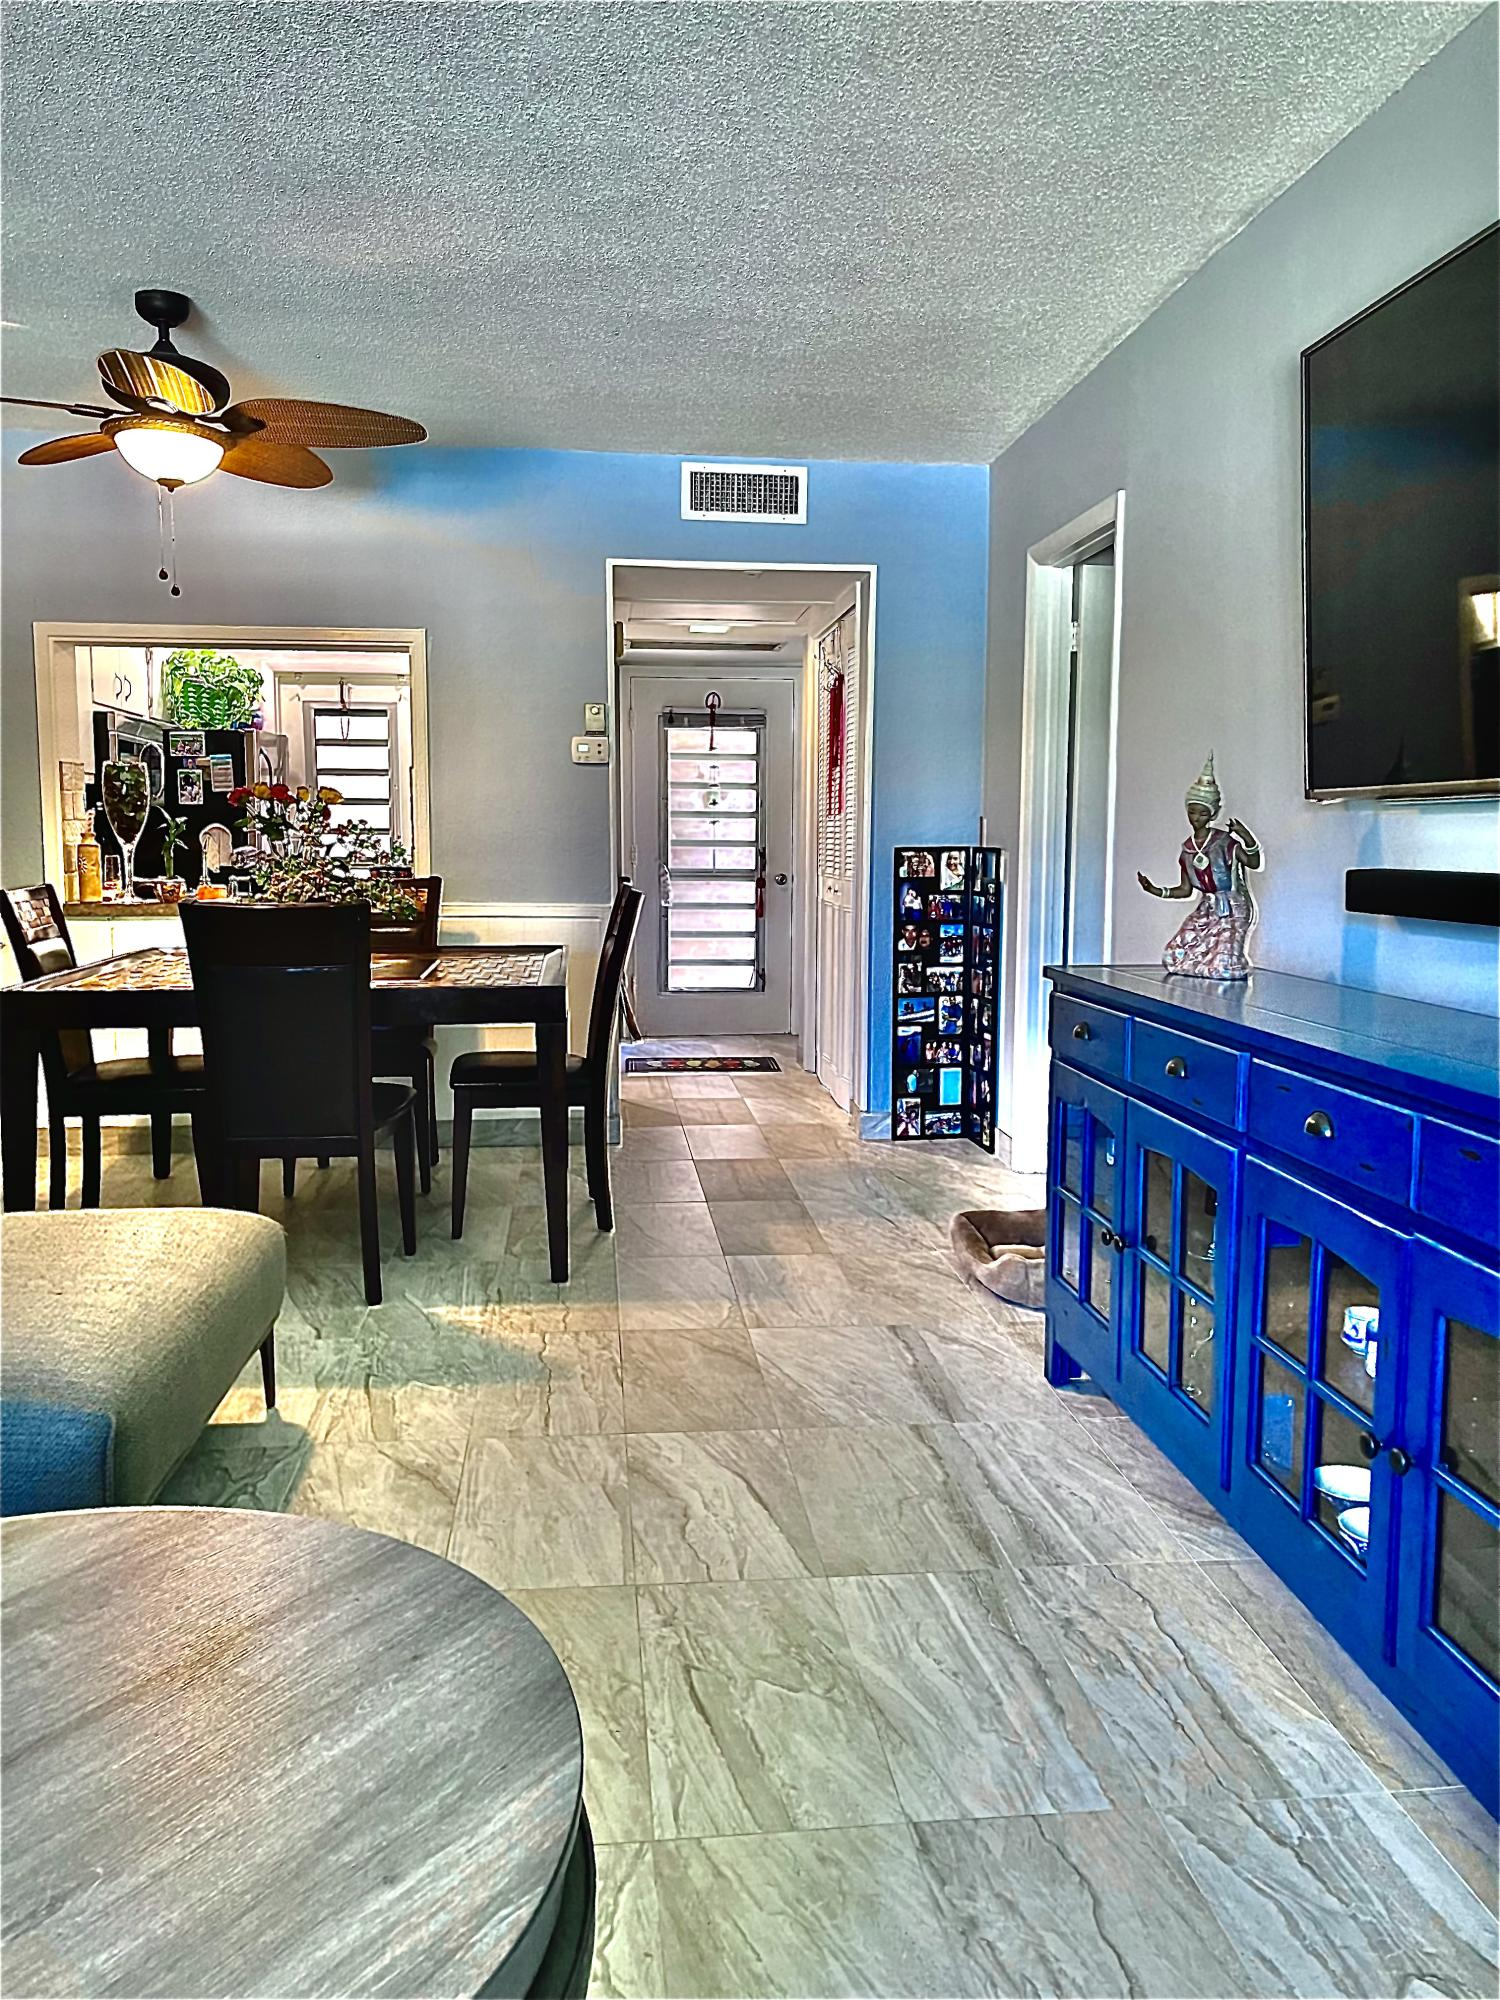 Home for sale in Leisure Gardens Lauderdale By The Sea Florida